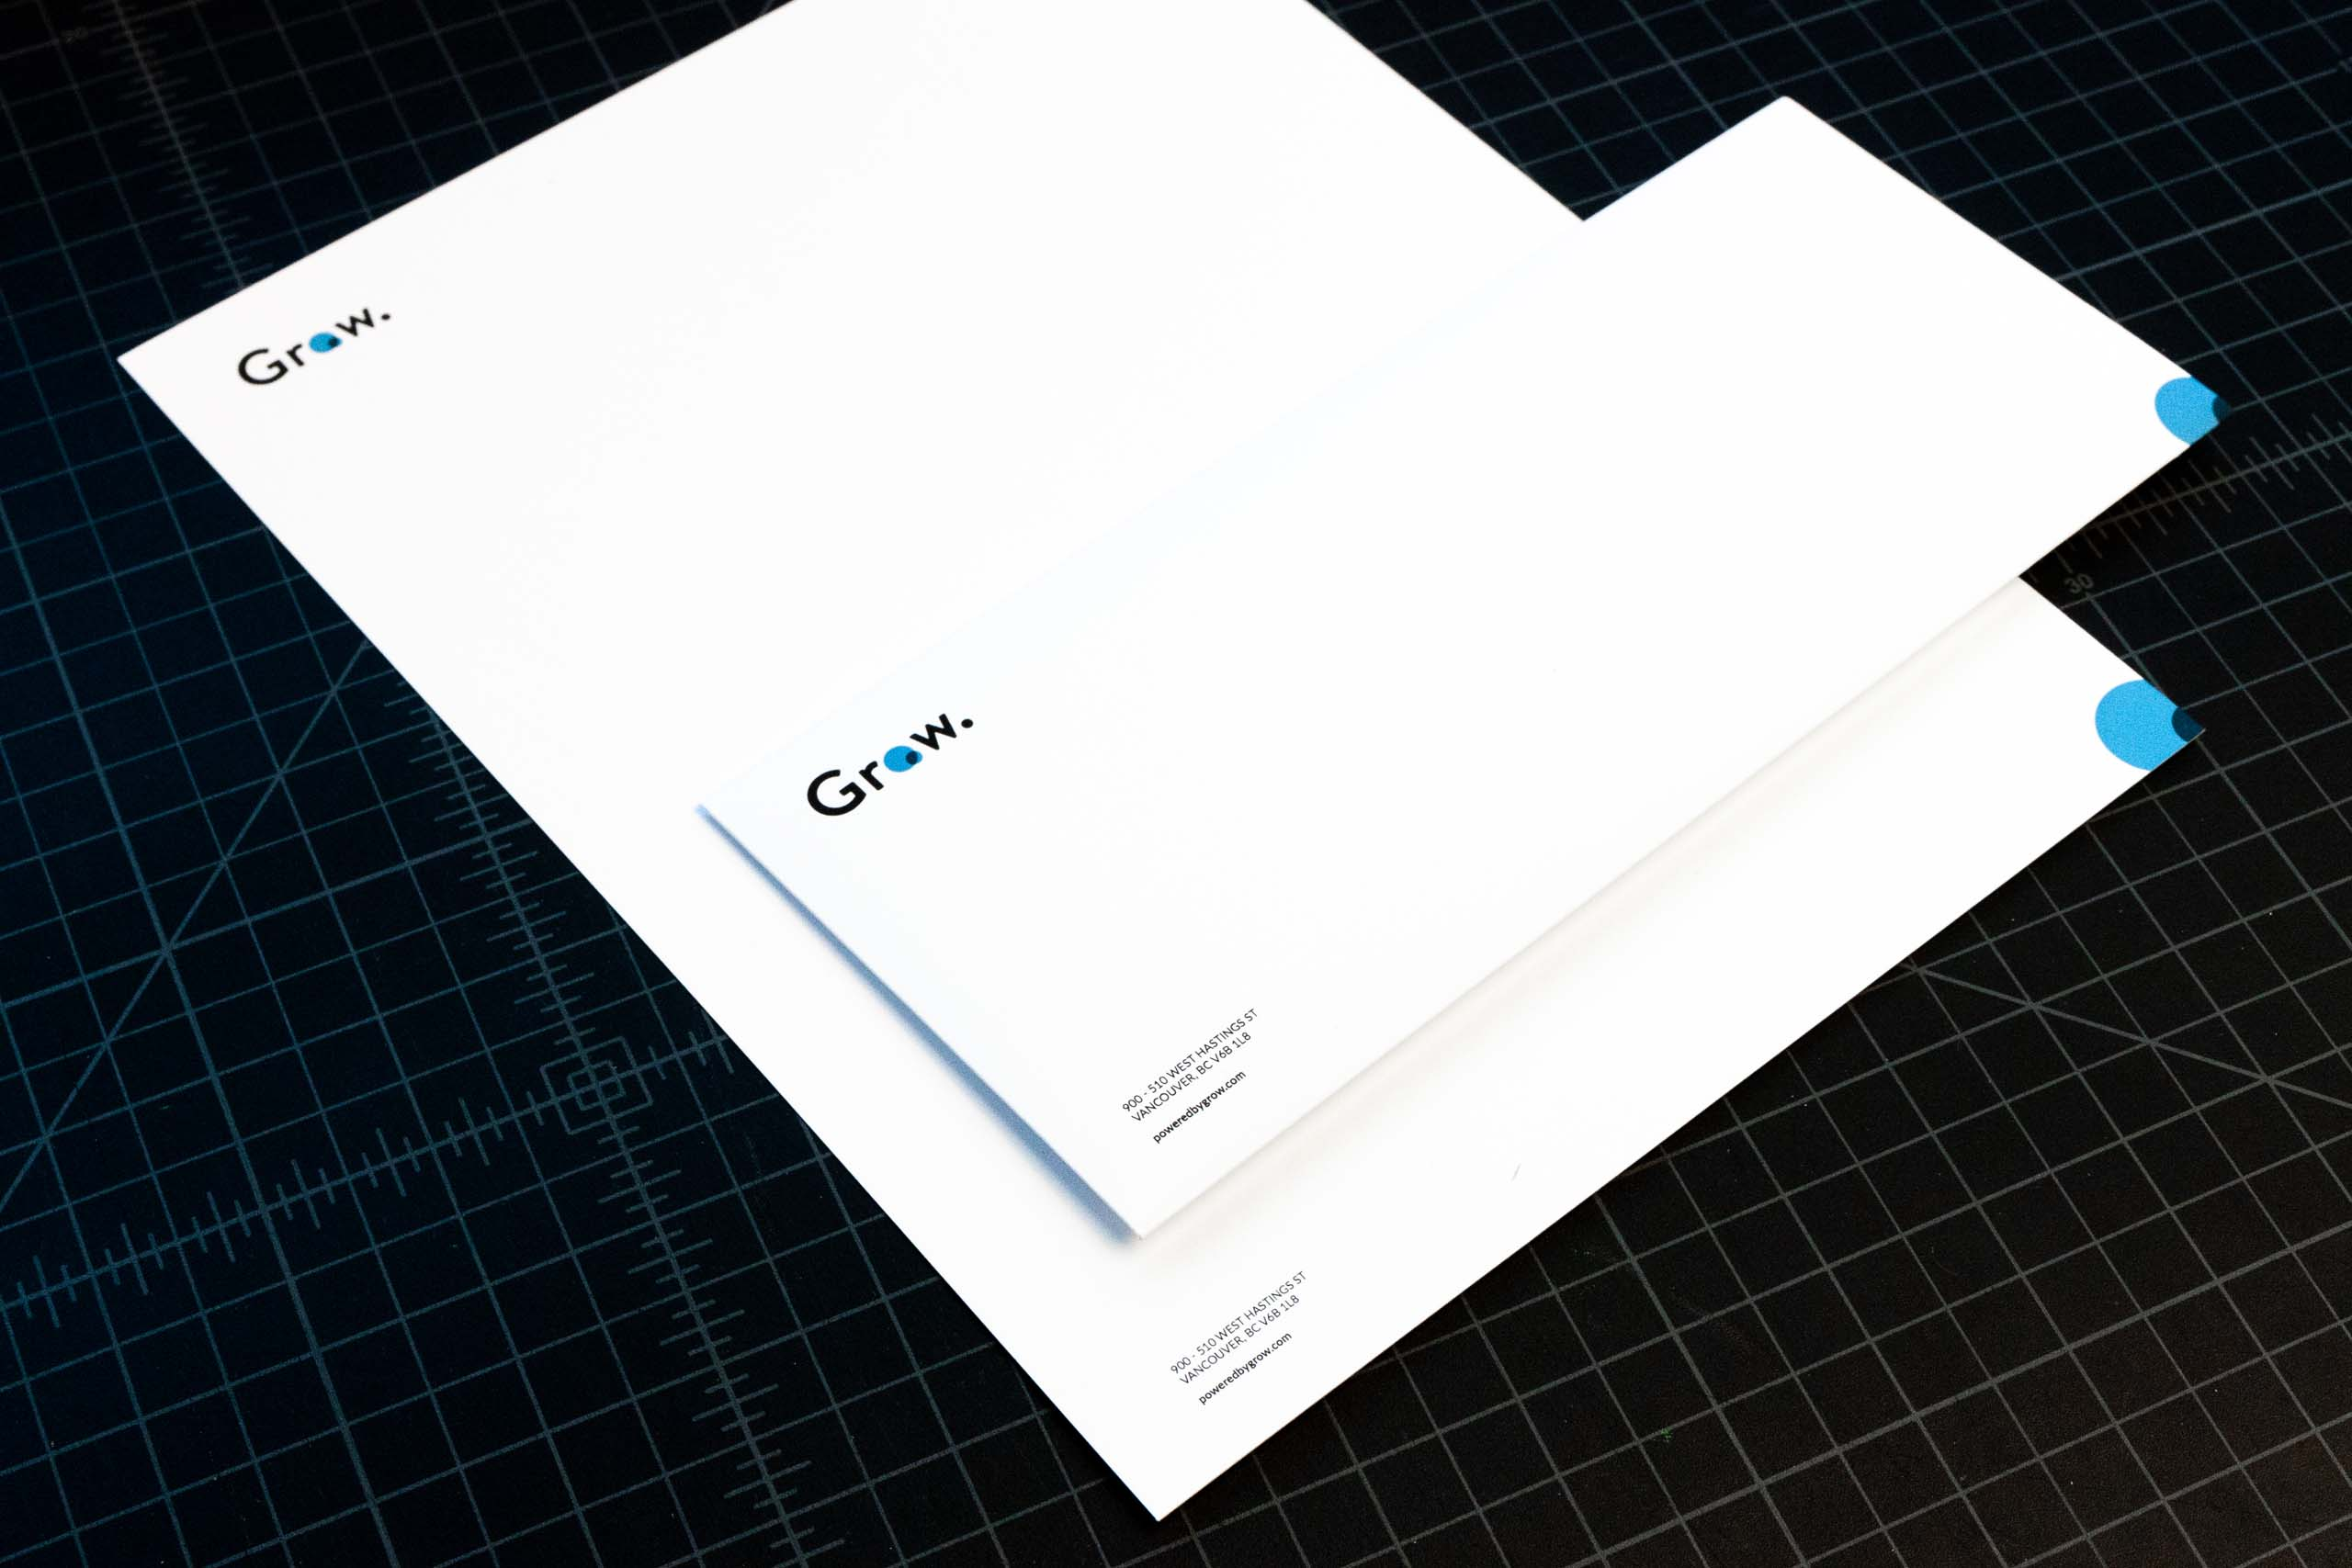 Grow technologies letterhead and envelope — by Yagnyuk.